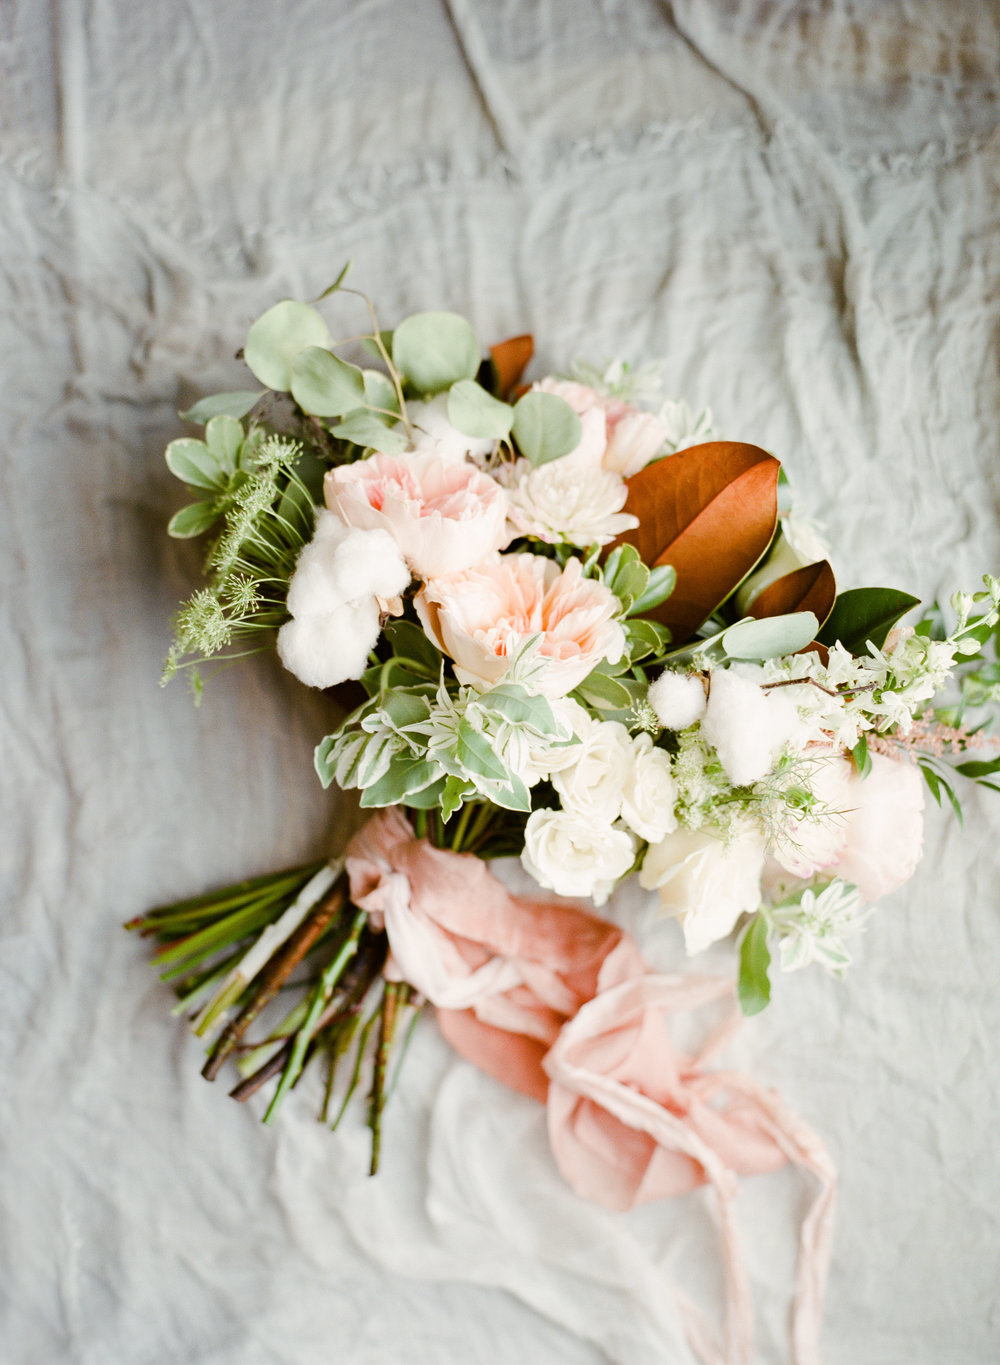 Kylie + Johnathan - Cotton bolls, soft pale blush blooms, lush greenery with pops of magnolia greenery made up this Southern dreamy wedding in the heart of Savannah.Photography: The Happy BloomLocation: Cha BellaI&B: Month-of Coordination + flowersSee more on our blog and Lowcountry Wedding Magazine!